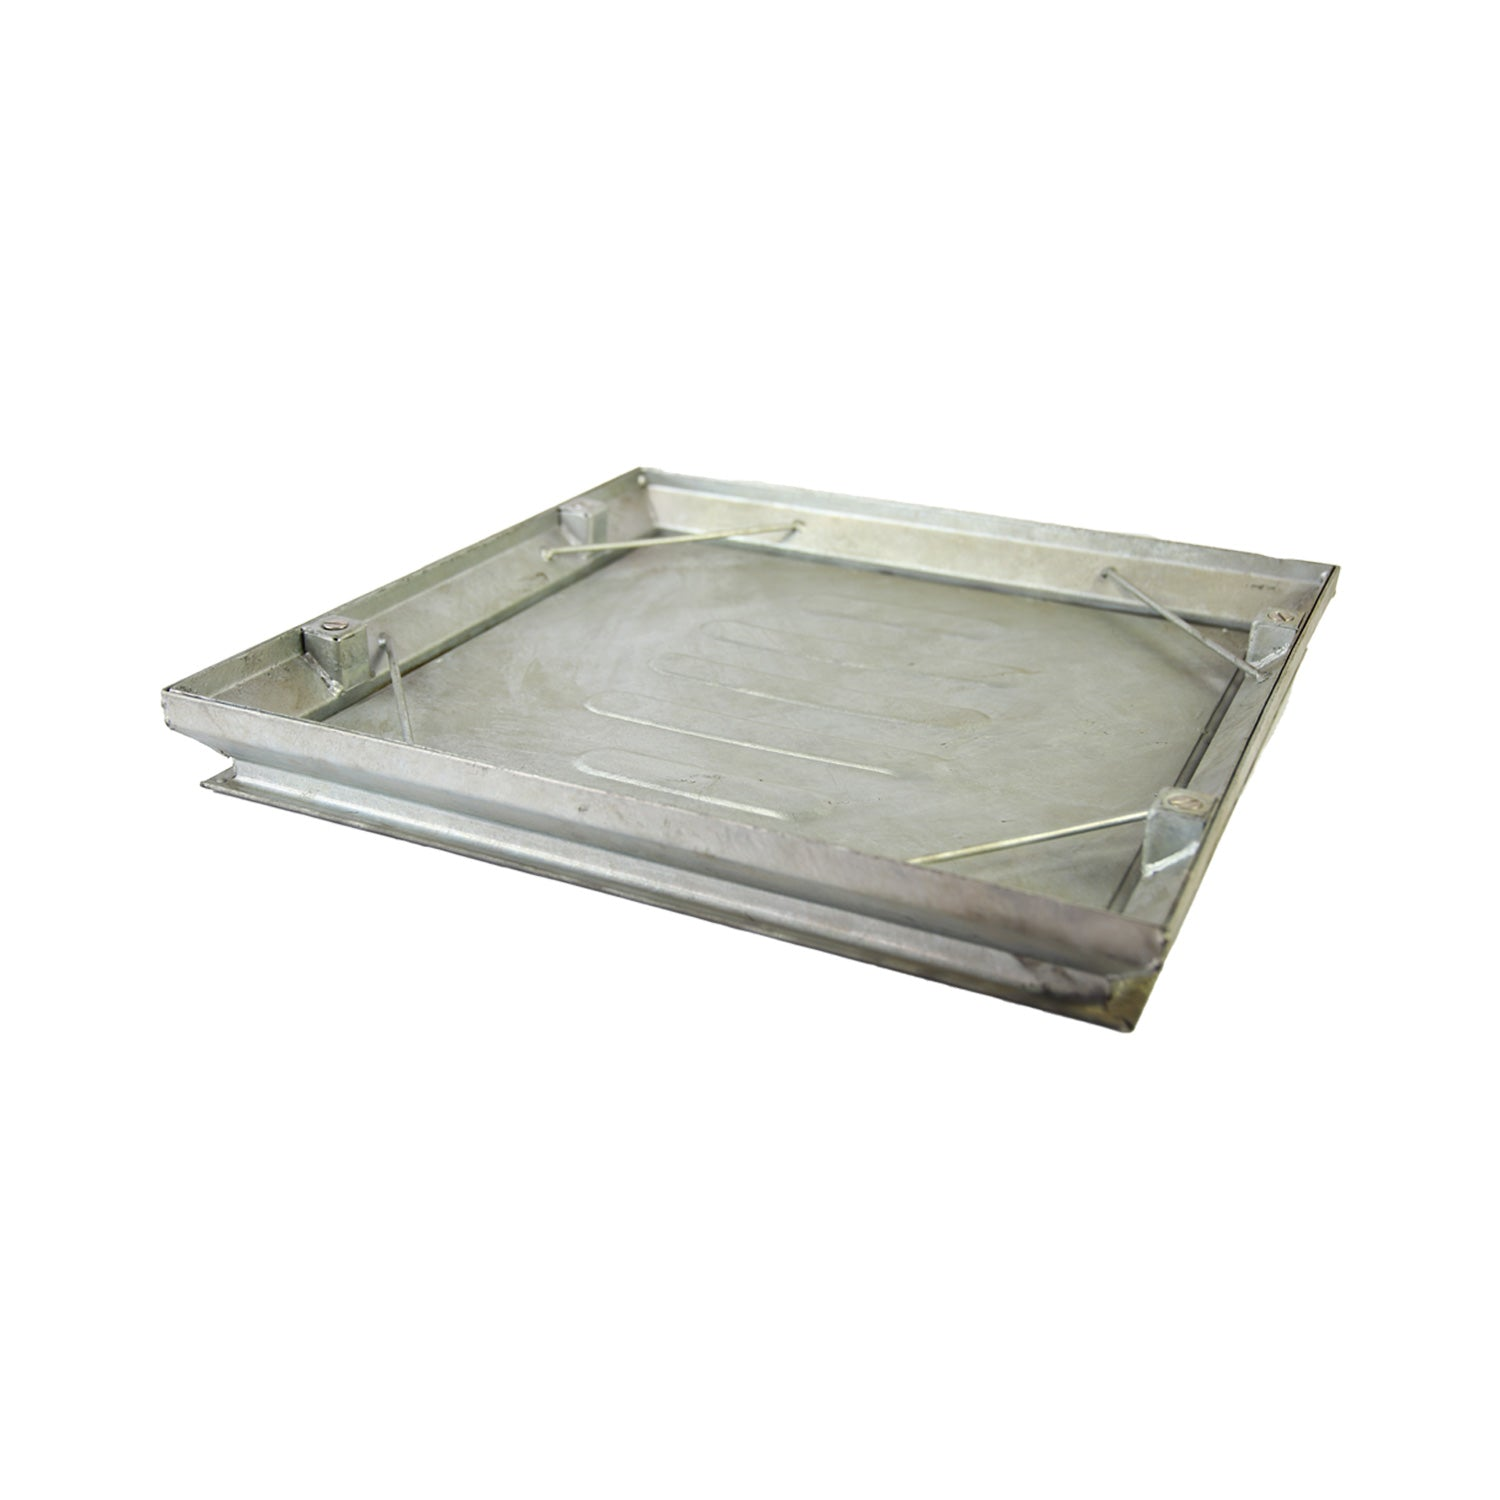 Double Seal Tray Type Manhole Cover 600mm x 600mm